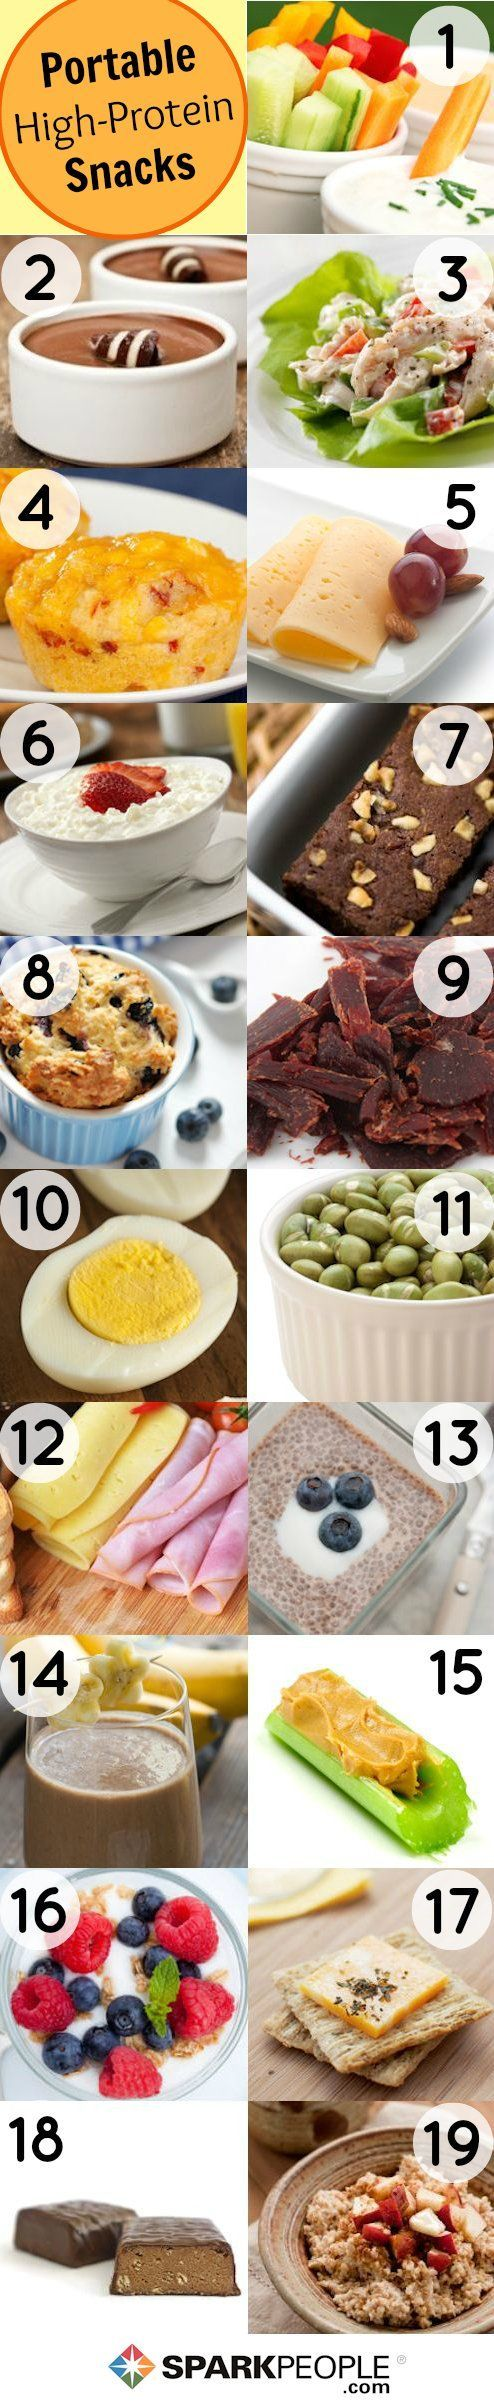 10 Perfectly Portable Snacks Packed With Protein